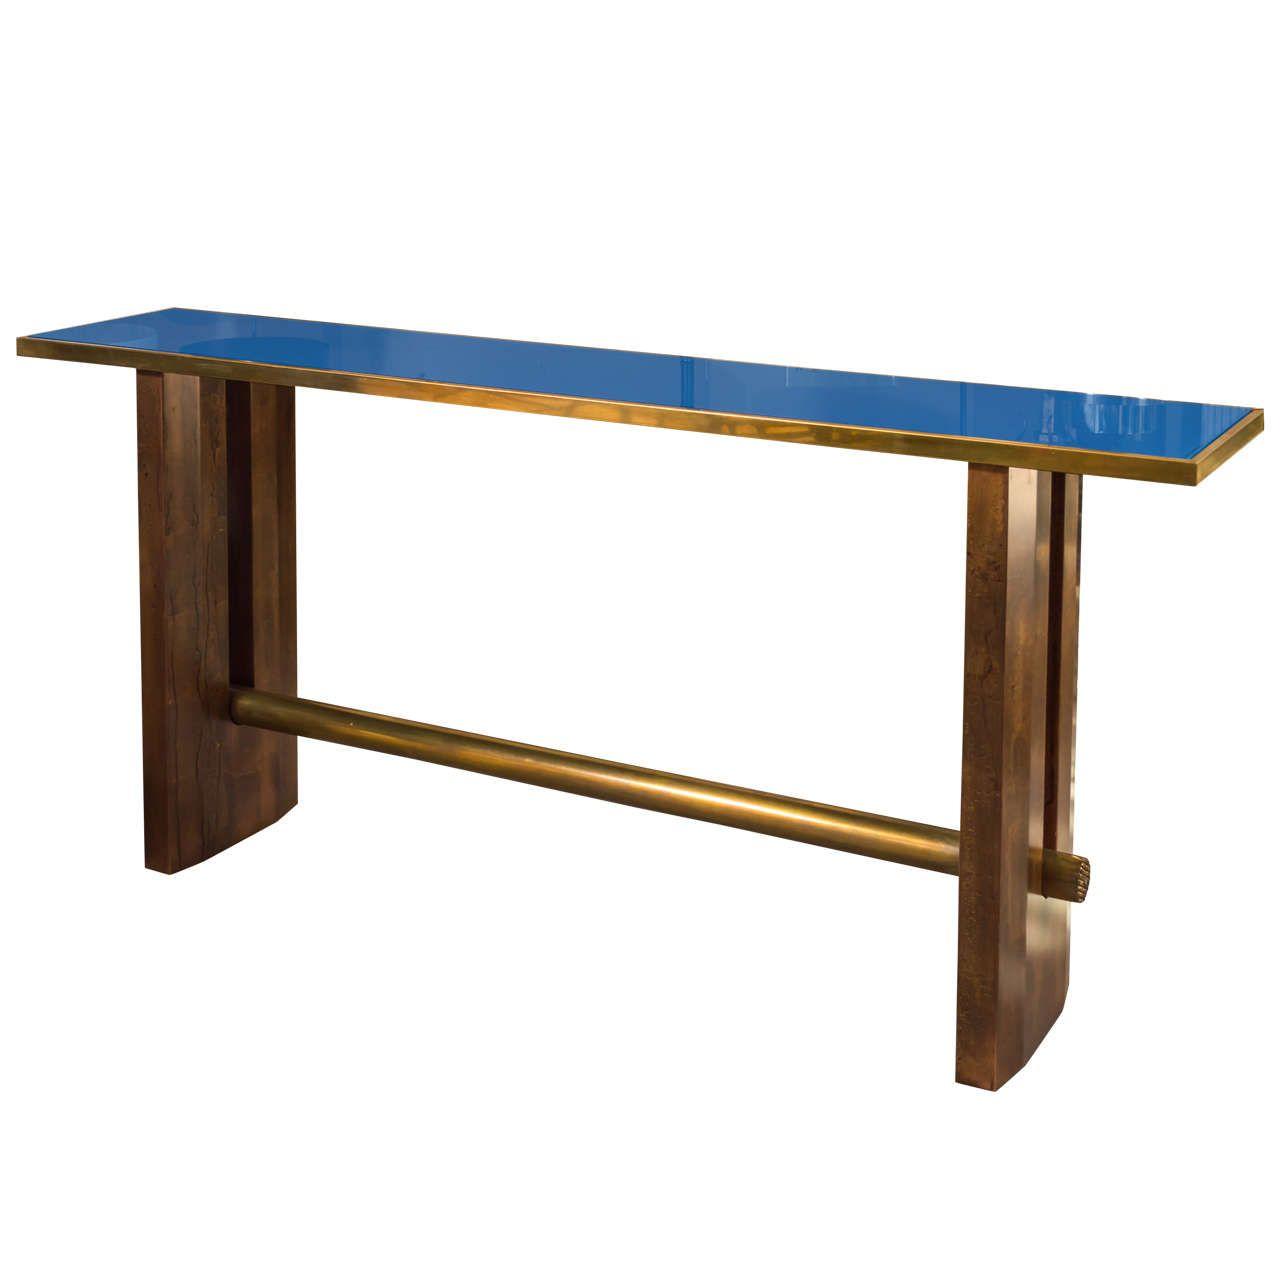 Max Papiri Console Table | From a unique collection of antique and modern console tables at https://www.1stdibs.com/furniture/tables/console-tables/